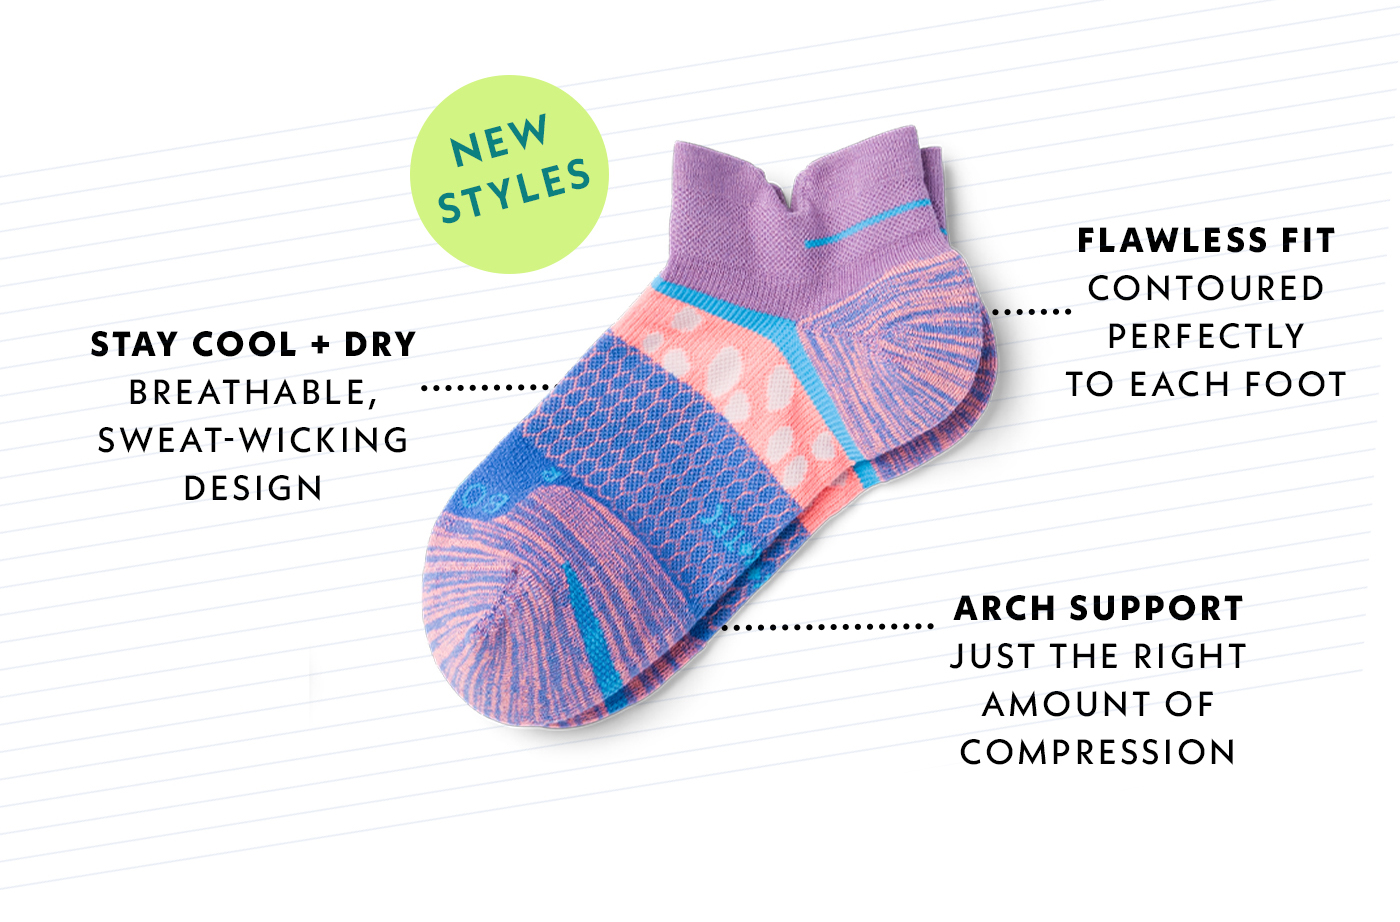 New Styles | Stay Cool + Dry | Breathable, Sweat-Wicking Design | Flawless Fit | Countoured perfectly to each foot | Arch Support | Just the right amount of compression